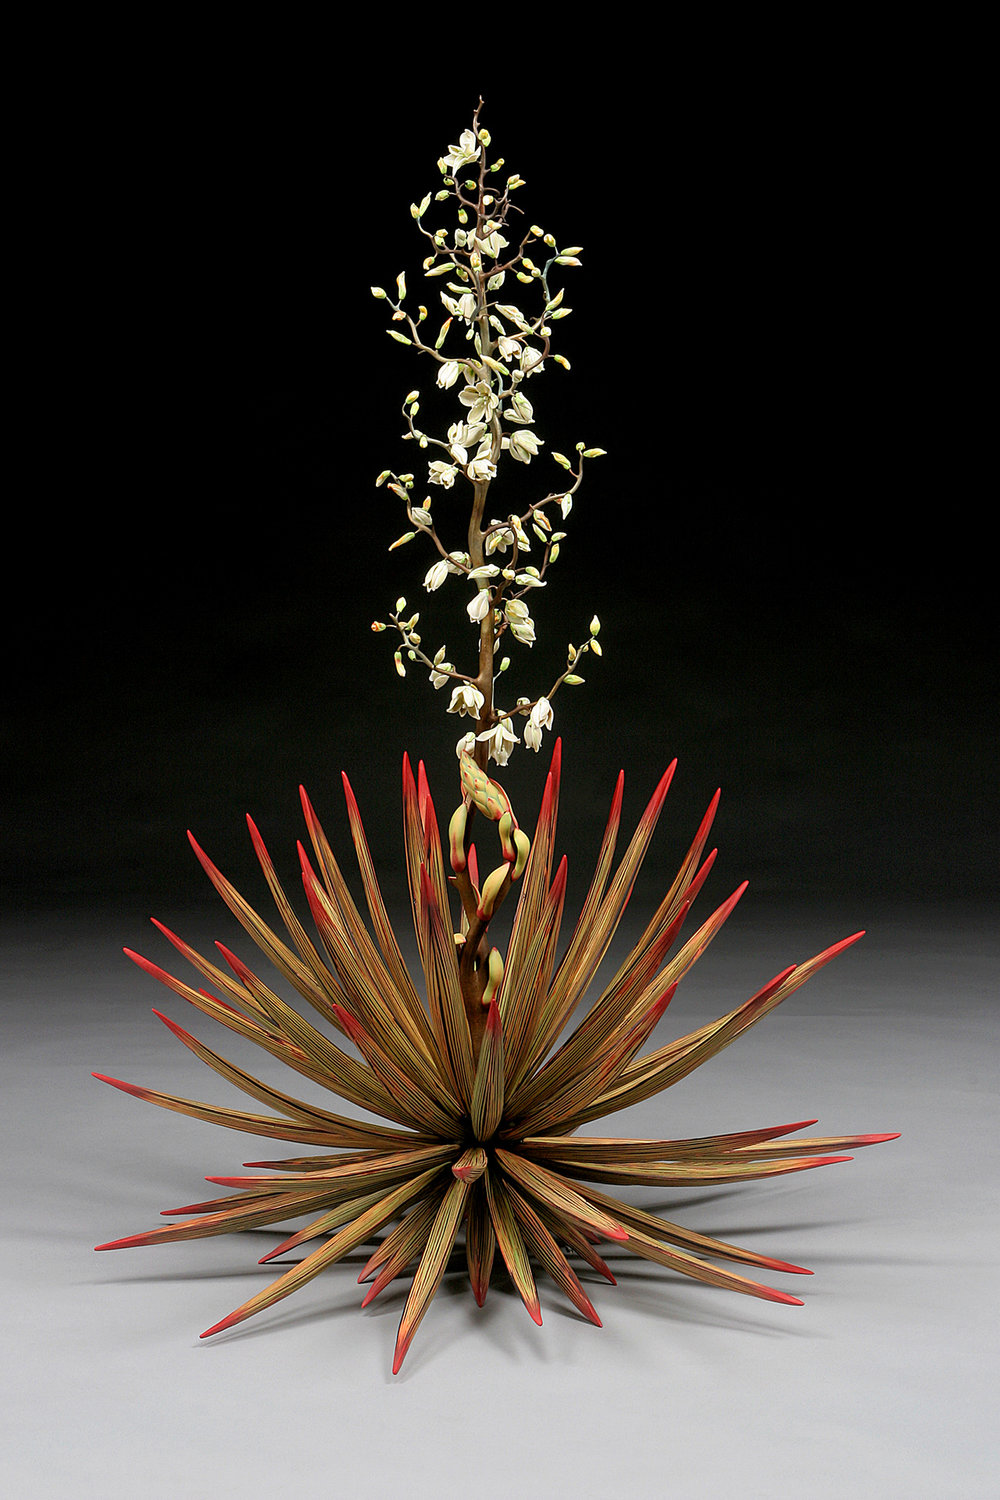 Yucca Temple of the Cool Beauty, 54h x 38w, Silica bronze, porcelain with abraded glaze, Moretti glass 1920.jpg